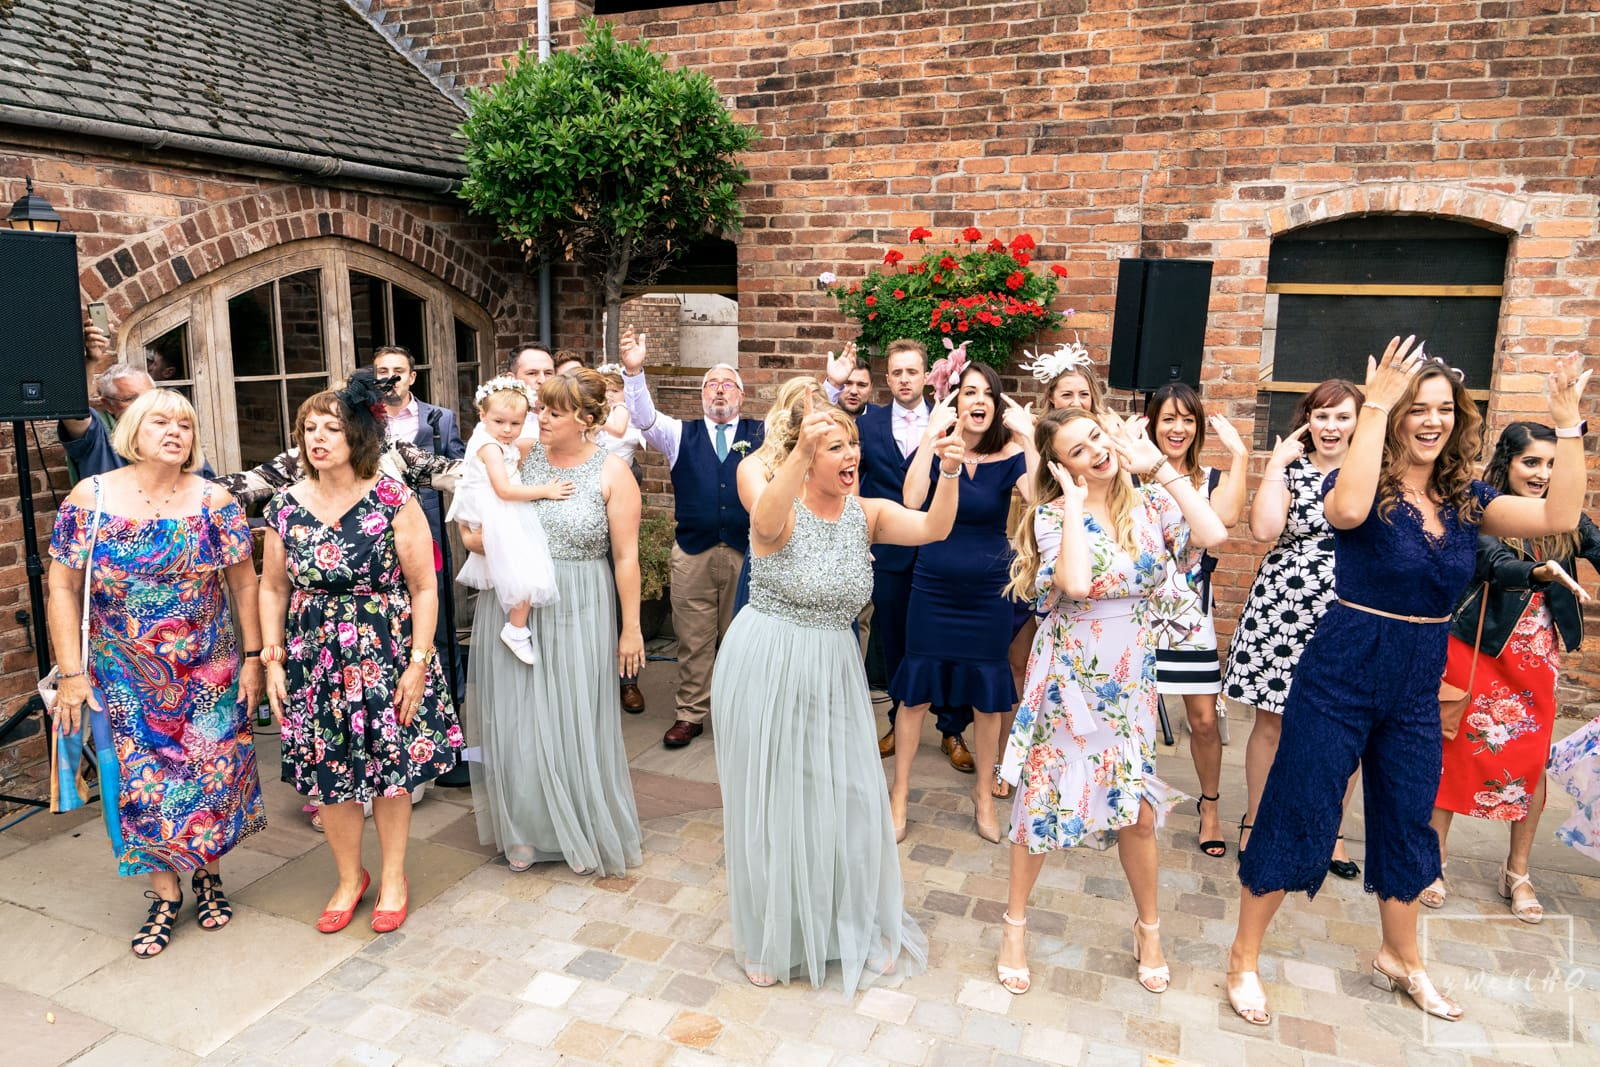 Mapperley Farm Wedding Photography + Mapperley Farm Wedding Photographer + Bride is surprised by a flashmob dance and singalong after her wedding ceremony